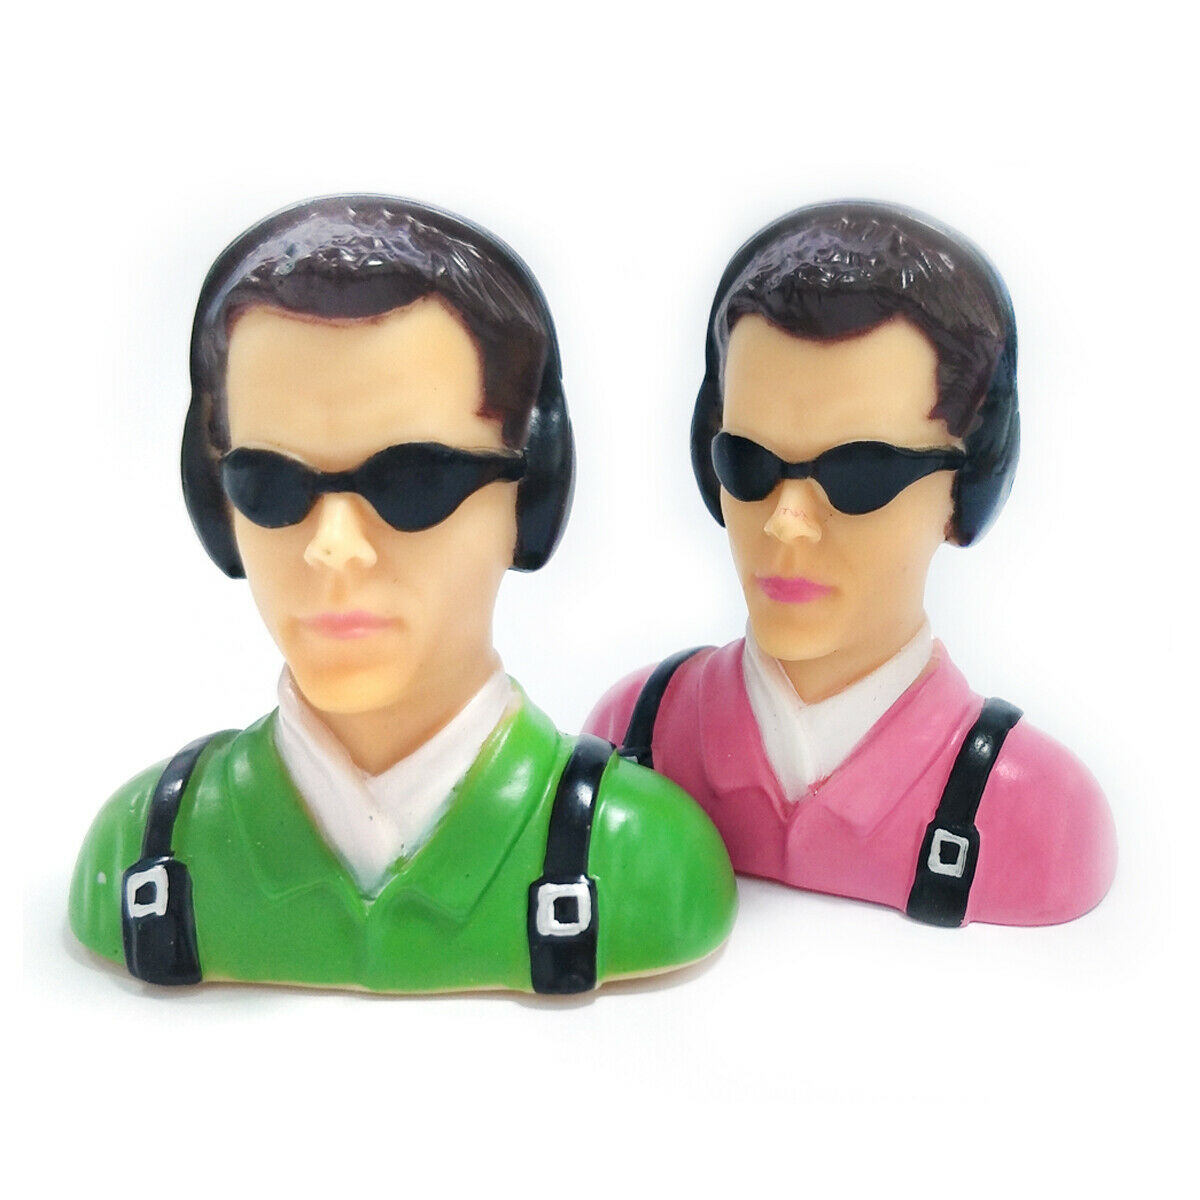 1/6 Scale Pilots Figure Statues  Pink/Green  For RC Aircraft Plane L66*W39*H70mm